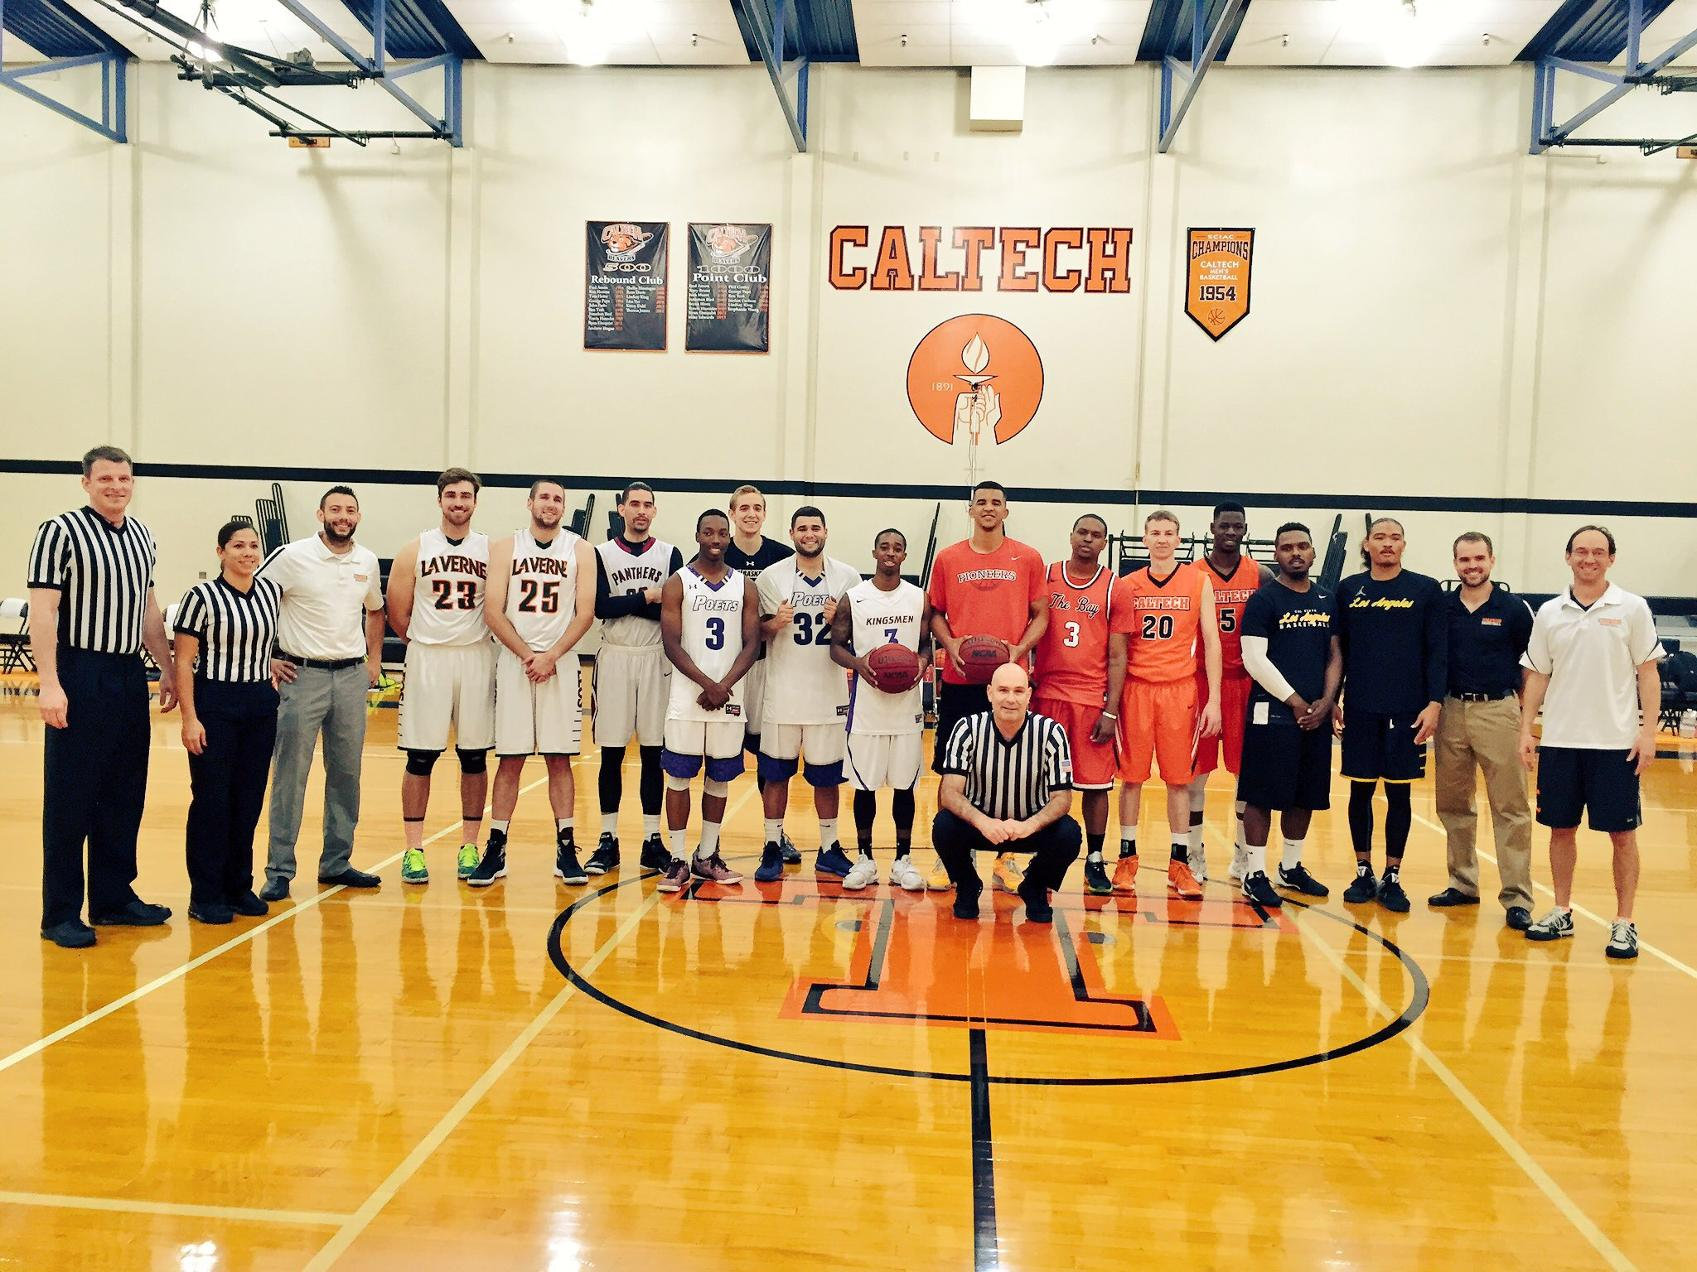 College All-Stars Put on Show at Caltech